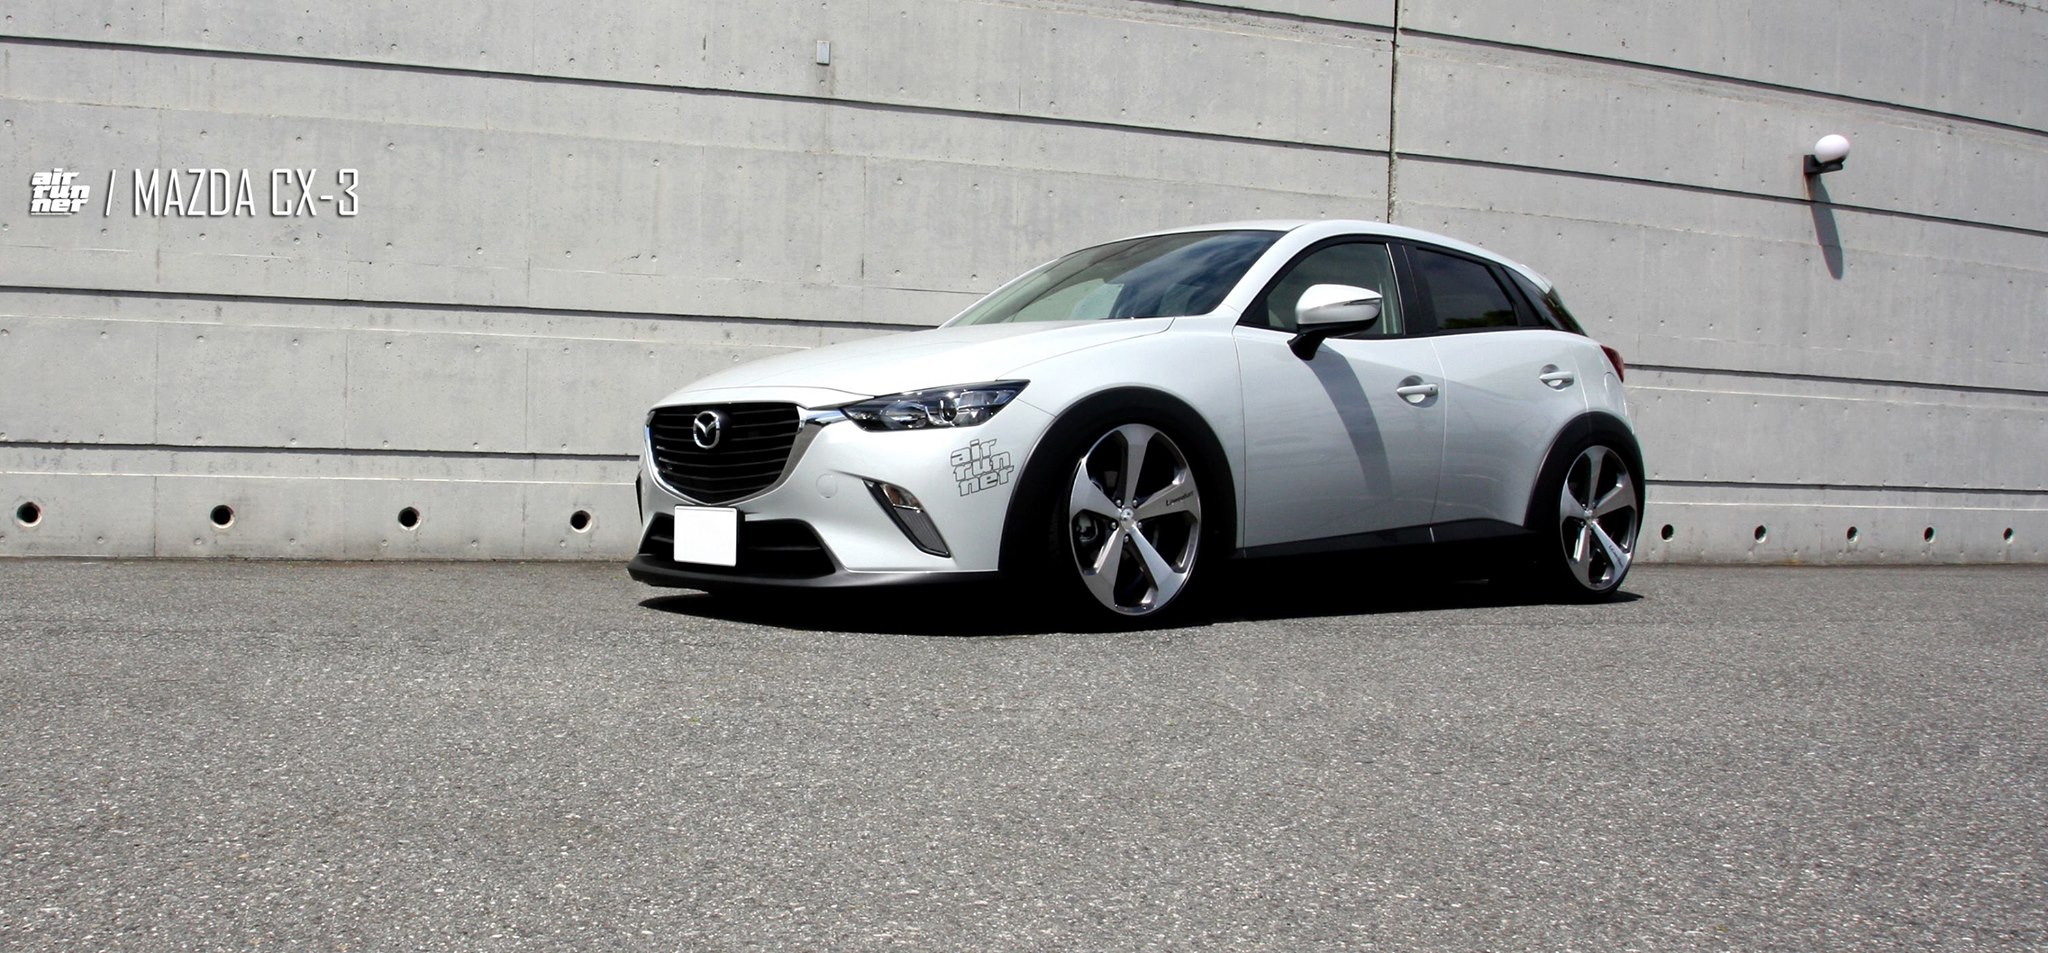 mazda-cx-3-air-runner-lowered-on-lowenha